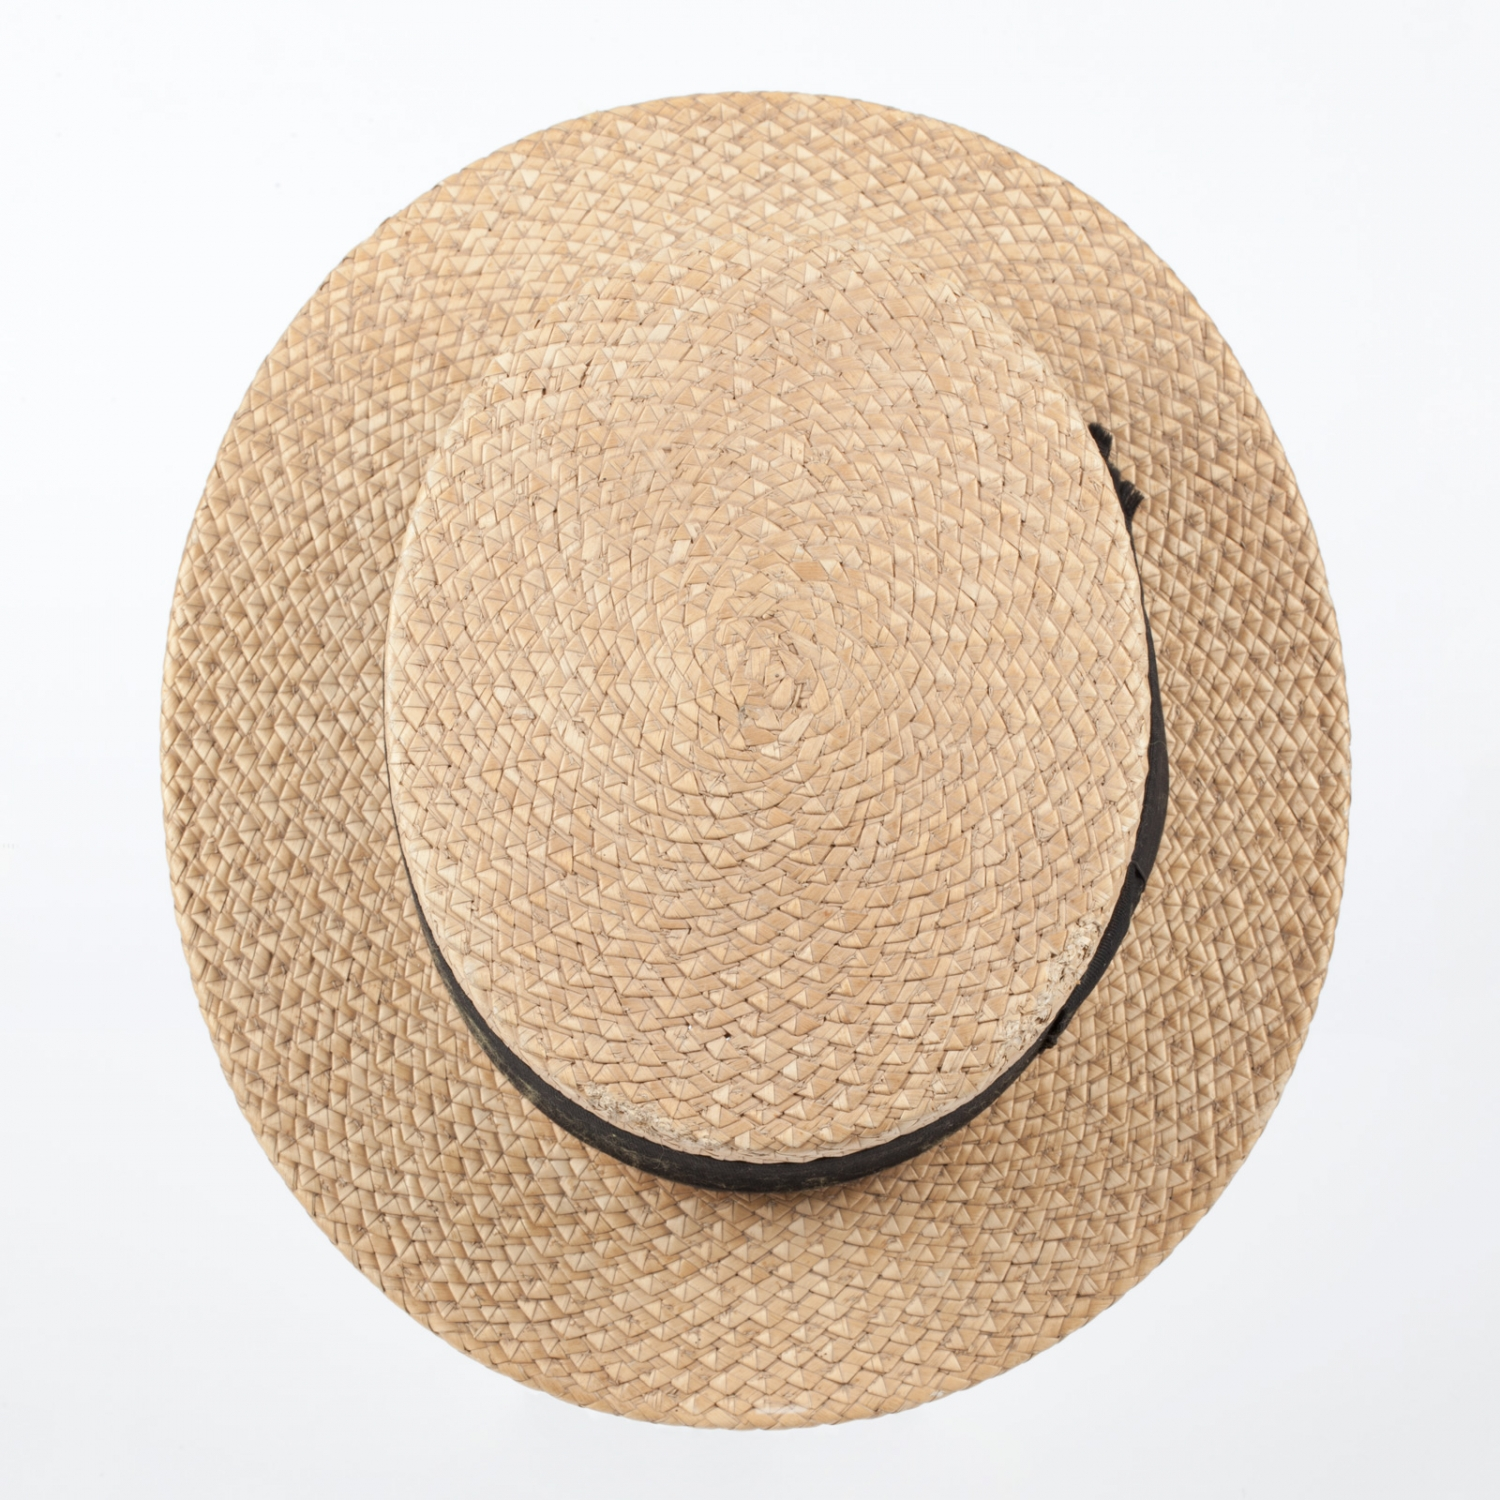 Plaited straw boater hat with a black faille ribbon